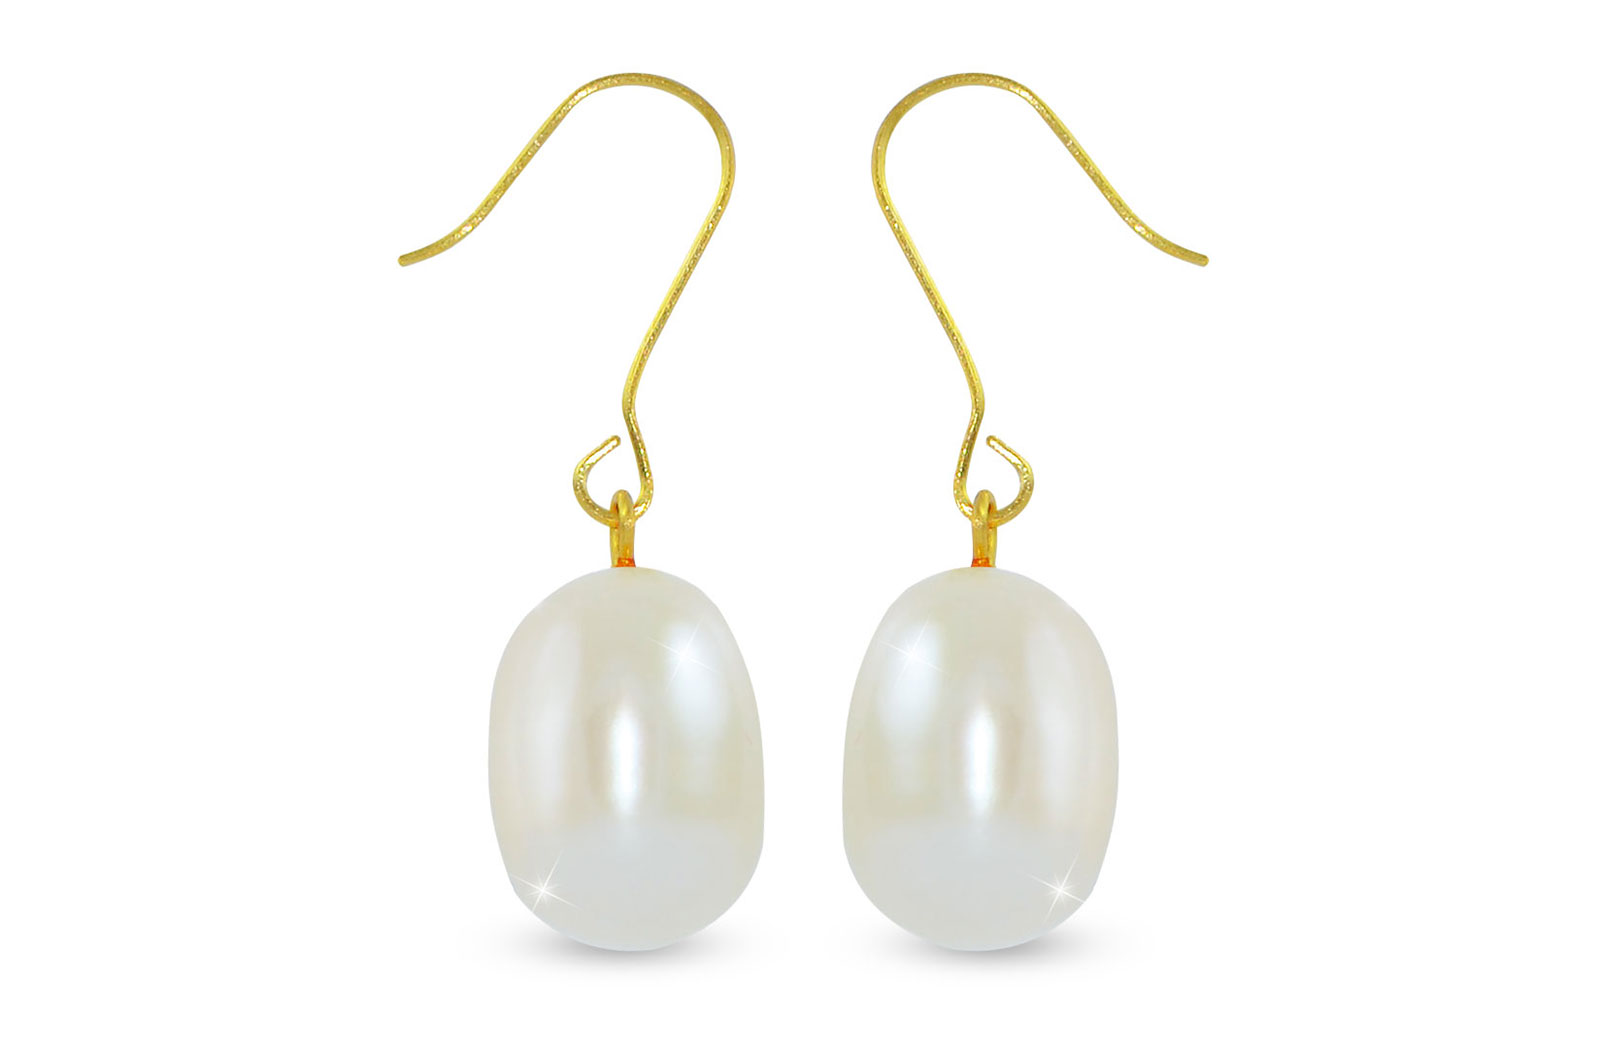 Vera Perla  9-10mm Big White Baroque Pearls Earrings in 18K Gold